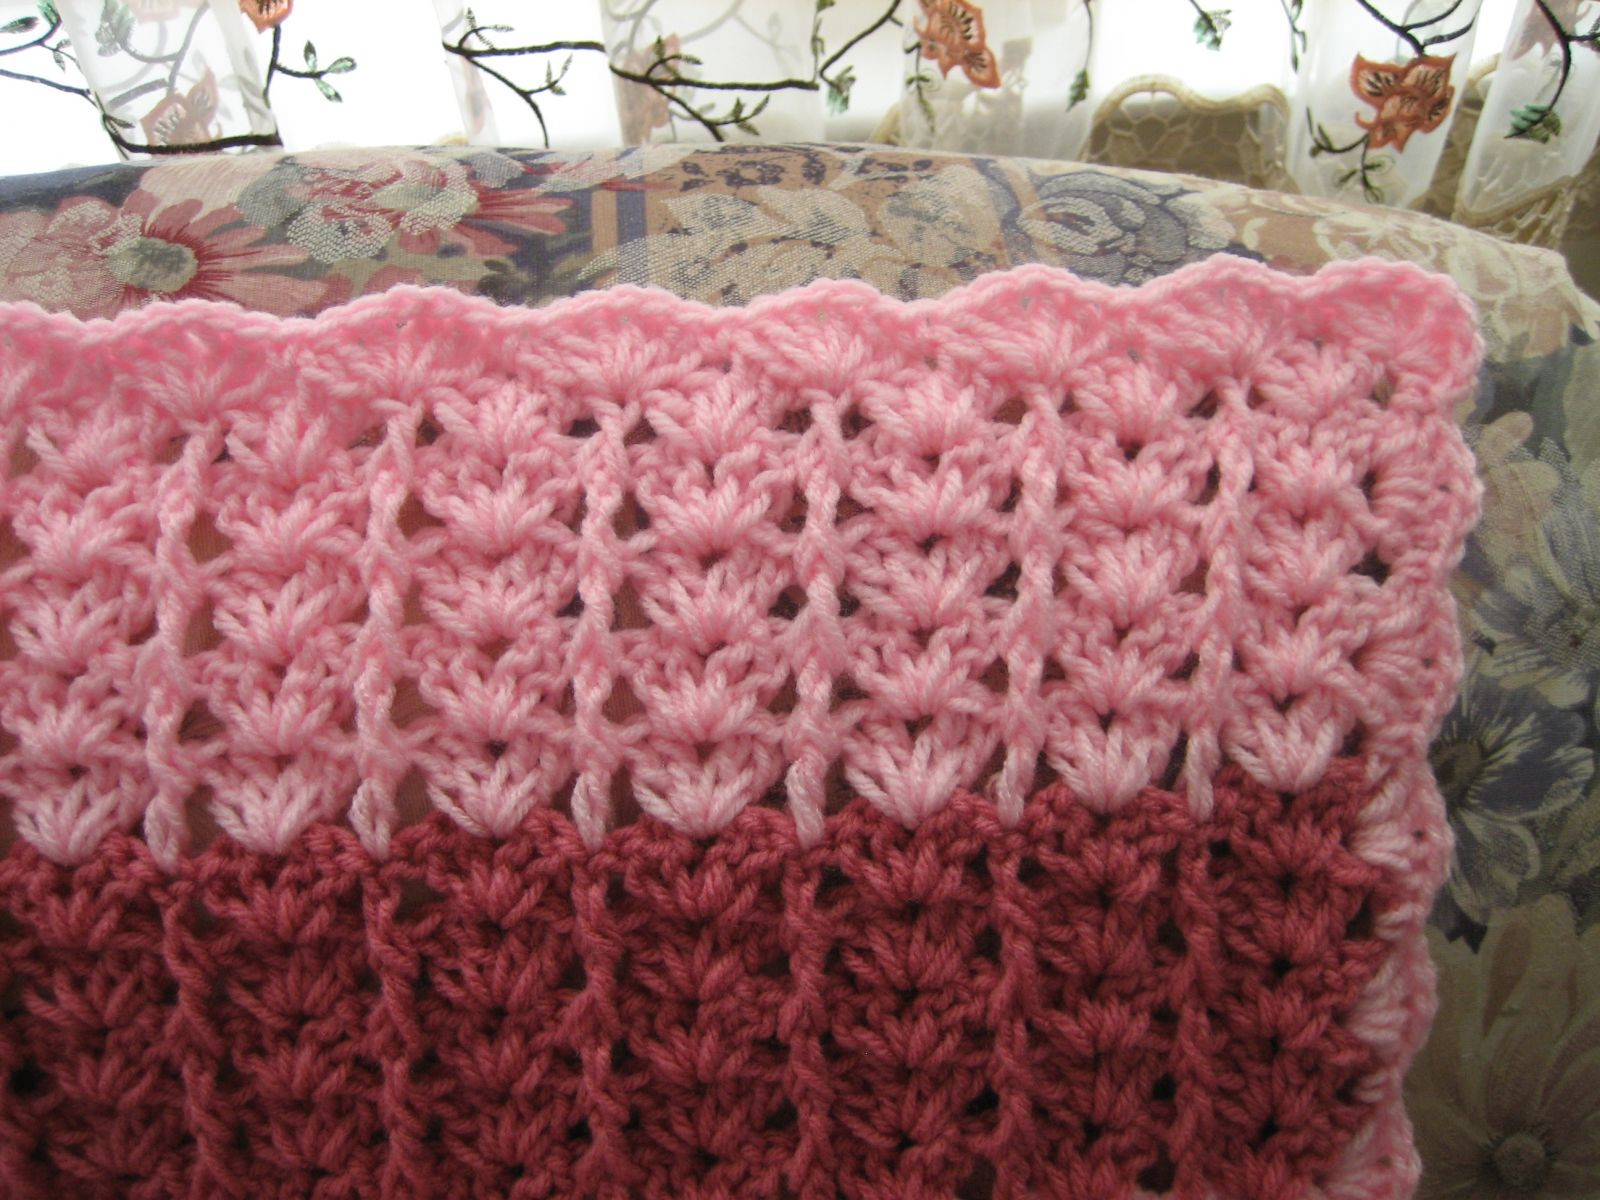 Lacy Crochet Baby Blanket Elegant Lacy Shades Of Pink Shells Afghan Of Top 48 Ideas Lacy Crochet Baby Blanket